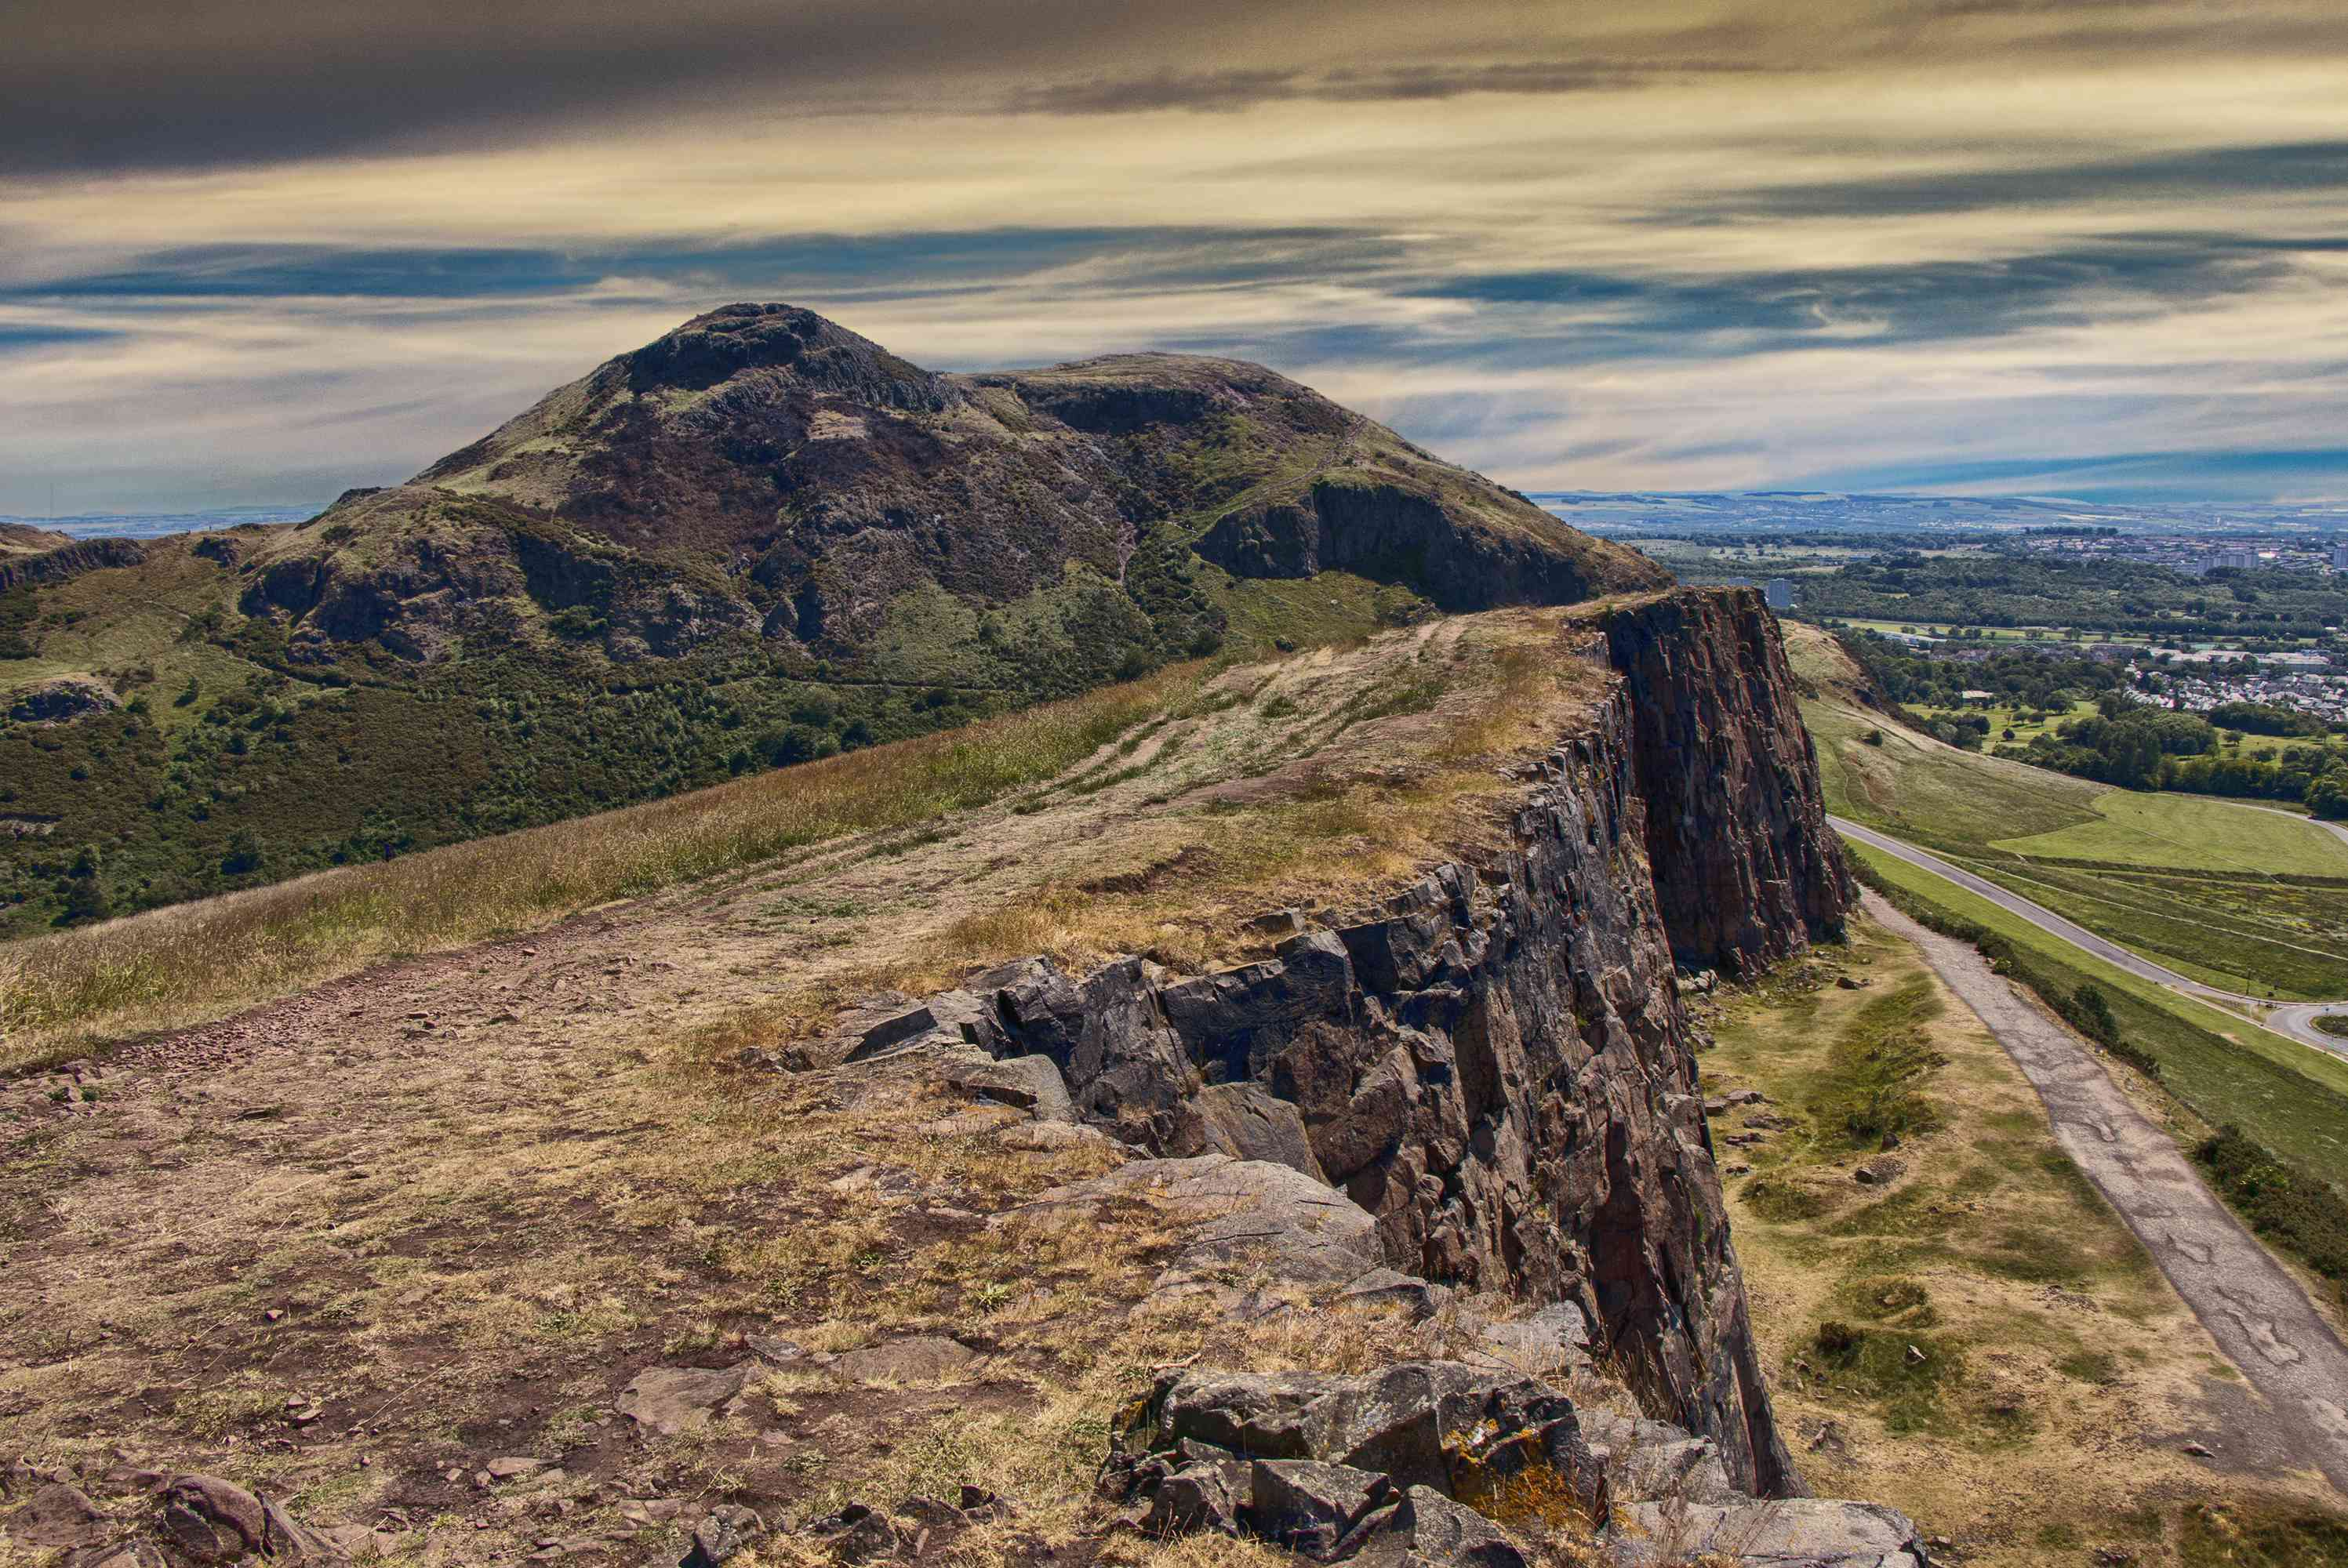 Arthur's Seat mountain in Scotland with path on the cliff and Edinburgh city in the background